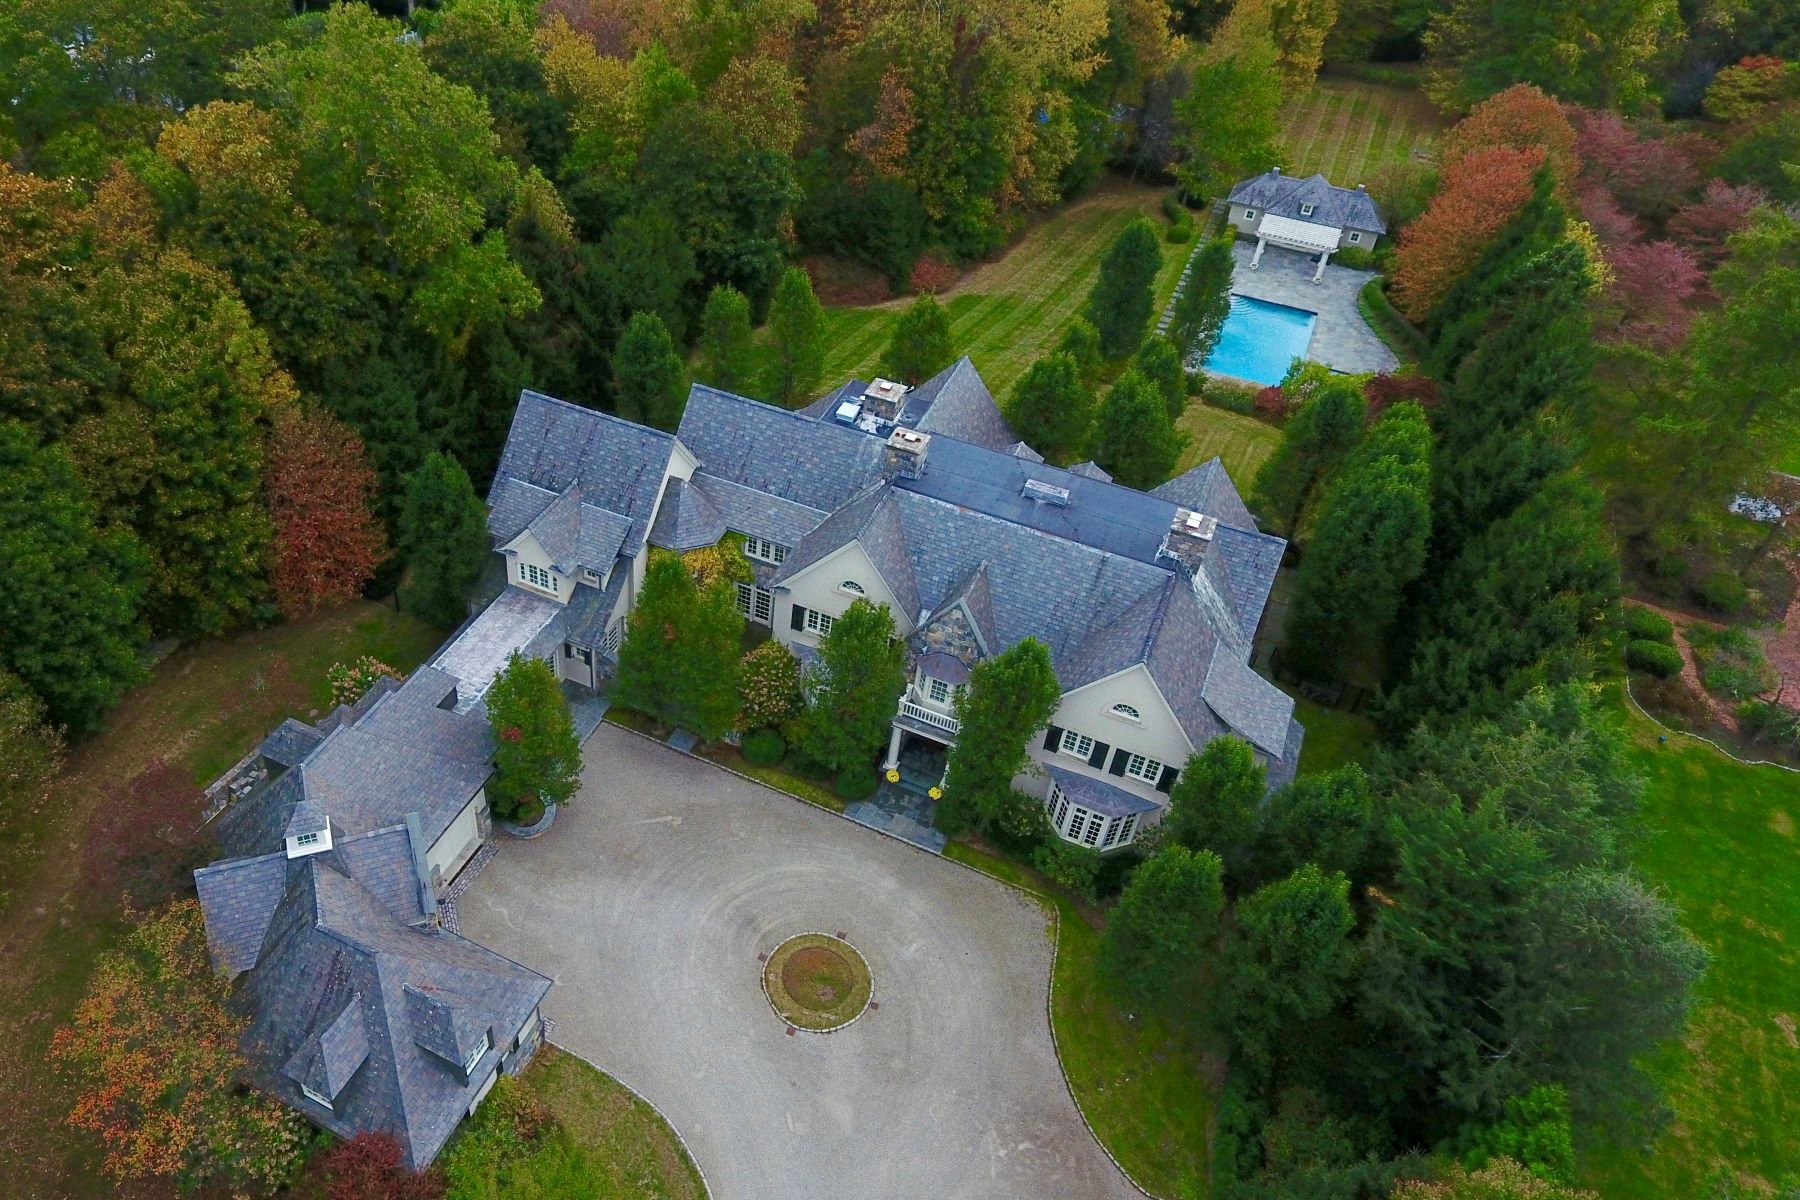 Maison unifamiliale pour l Vente à Amazing Roger Ferris Custom-Designed Property 35 Kettle Creek Road, Weston, Connecticut, 06883 États-Unis